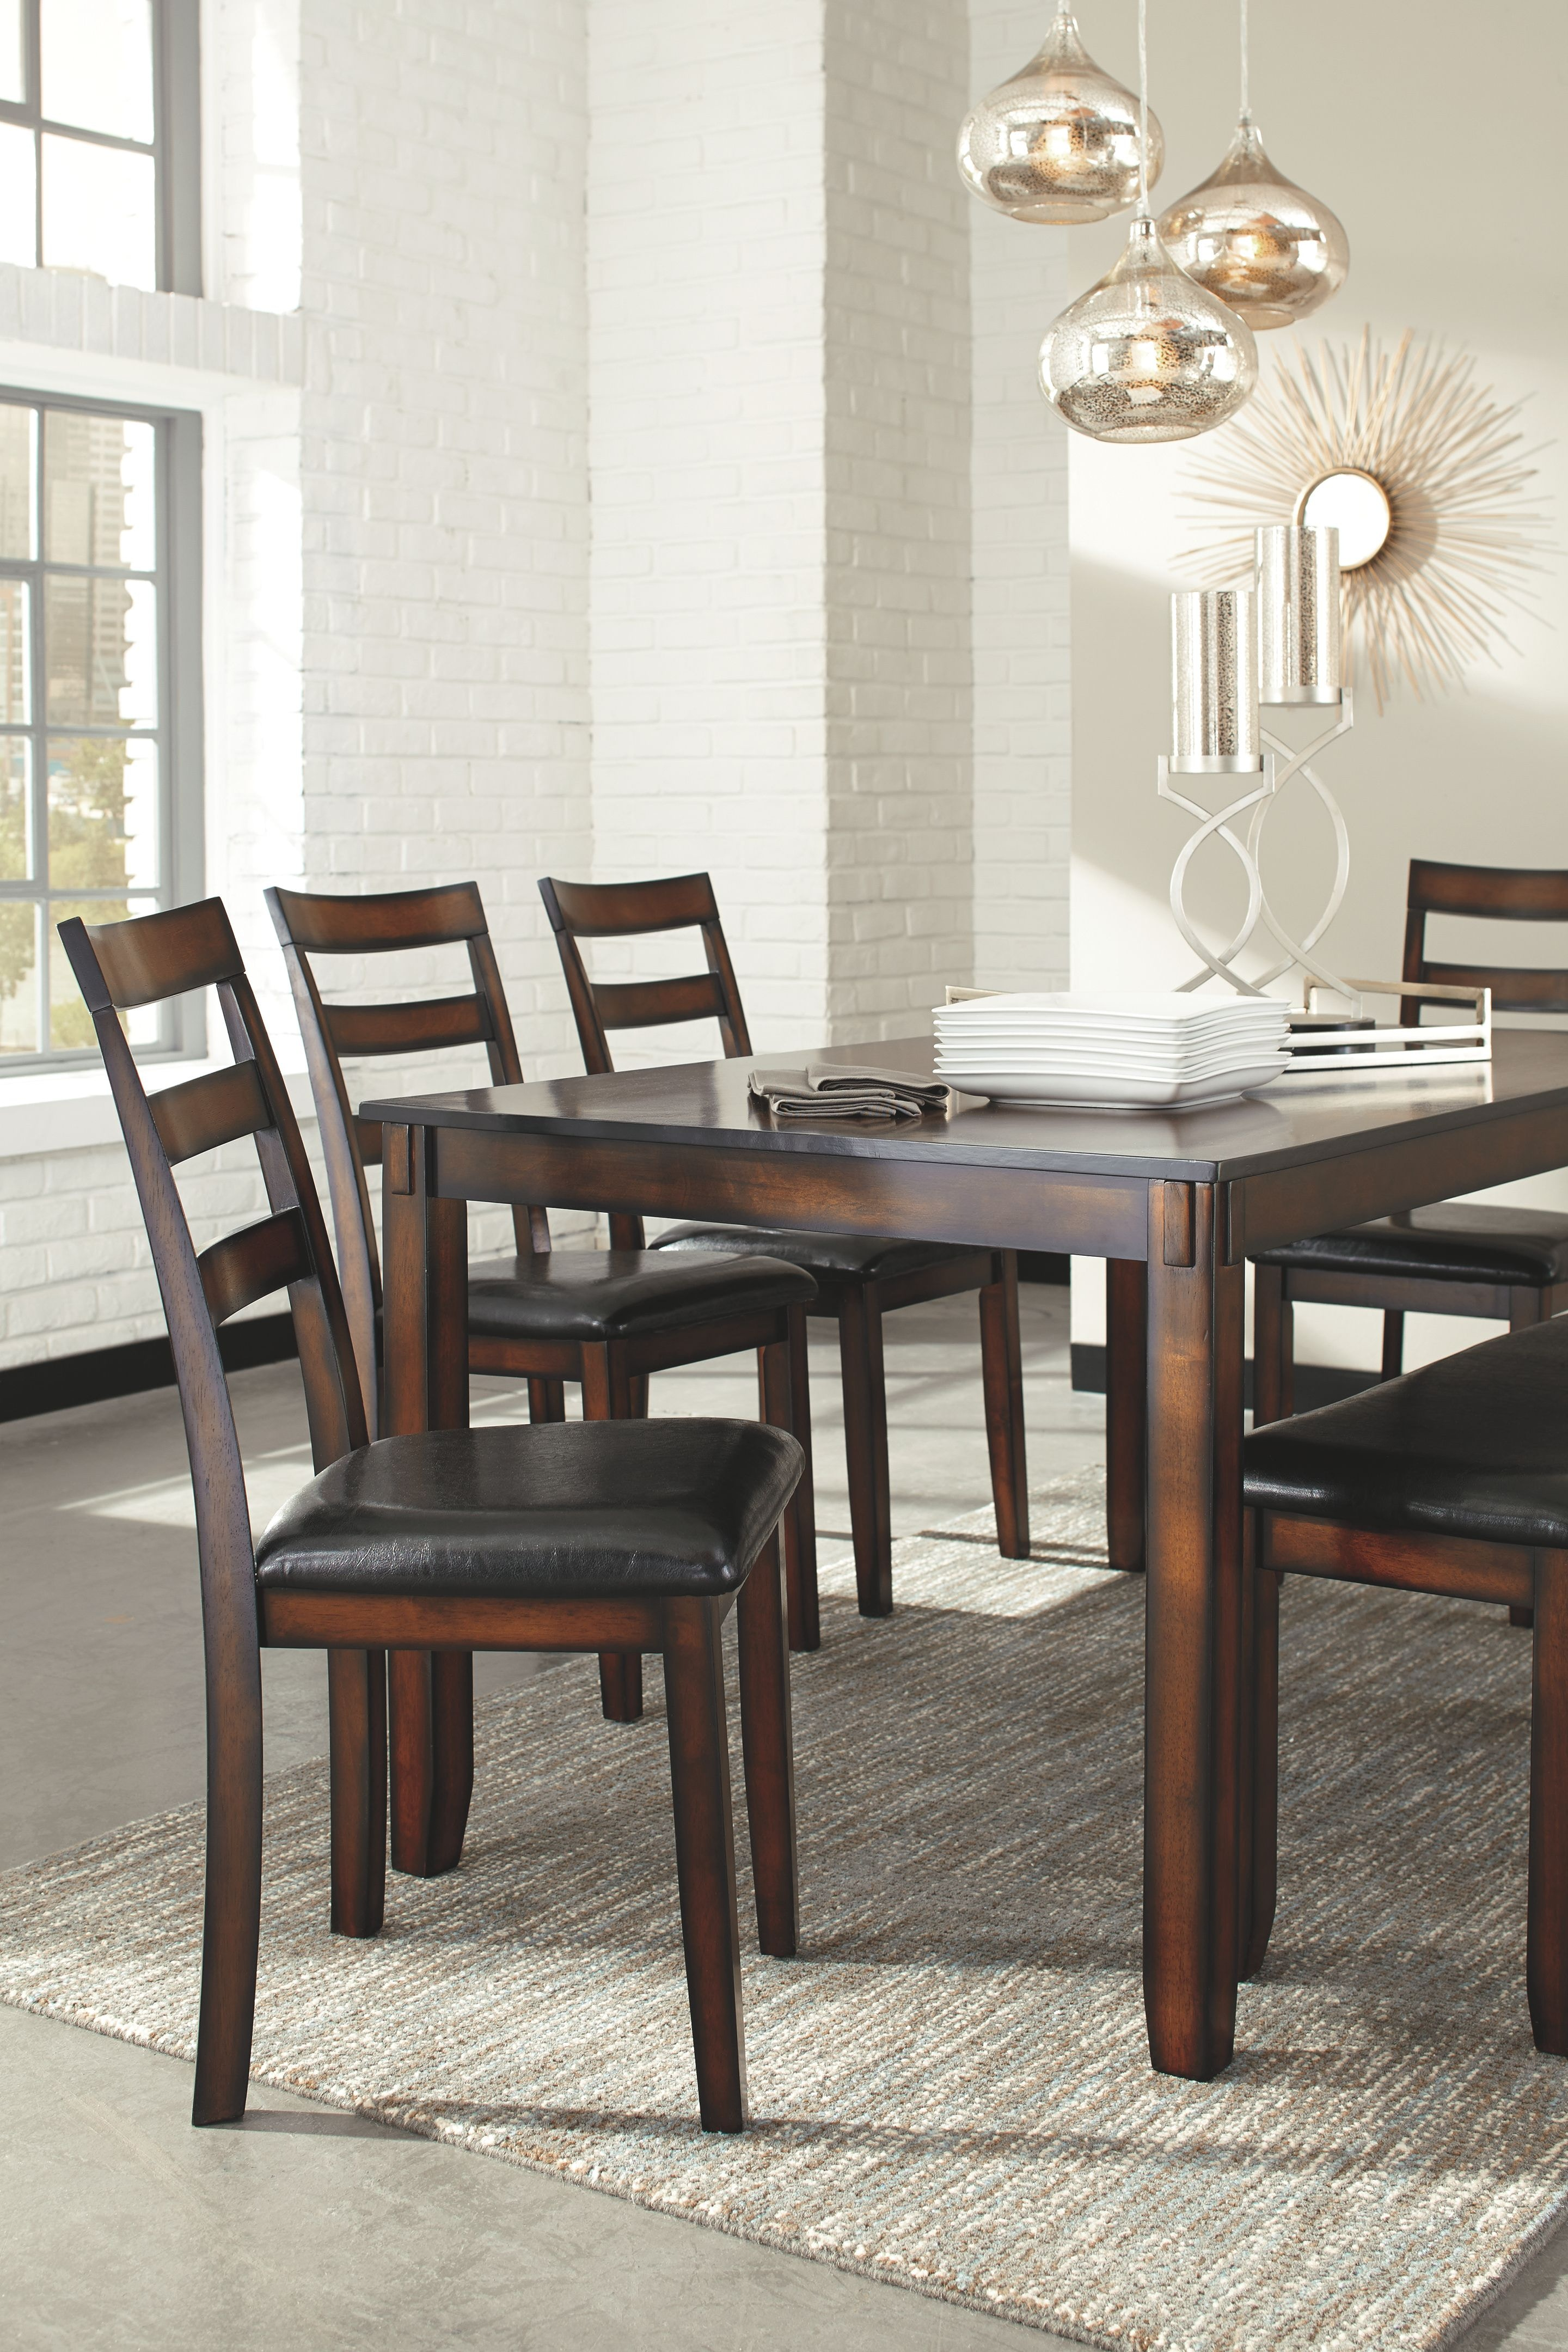 Brown Ashley Furniture Signature Design Coviar Dining Room Table And Chairs With Bench Set Of 6